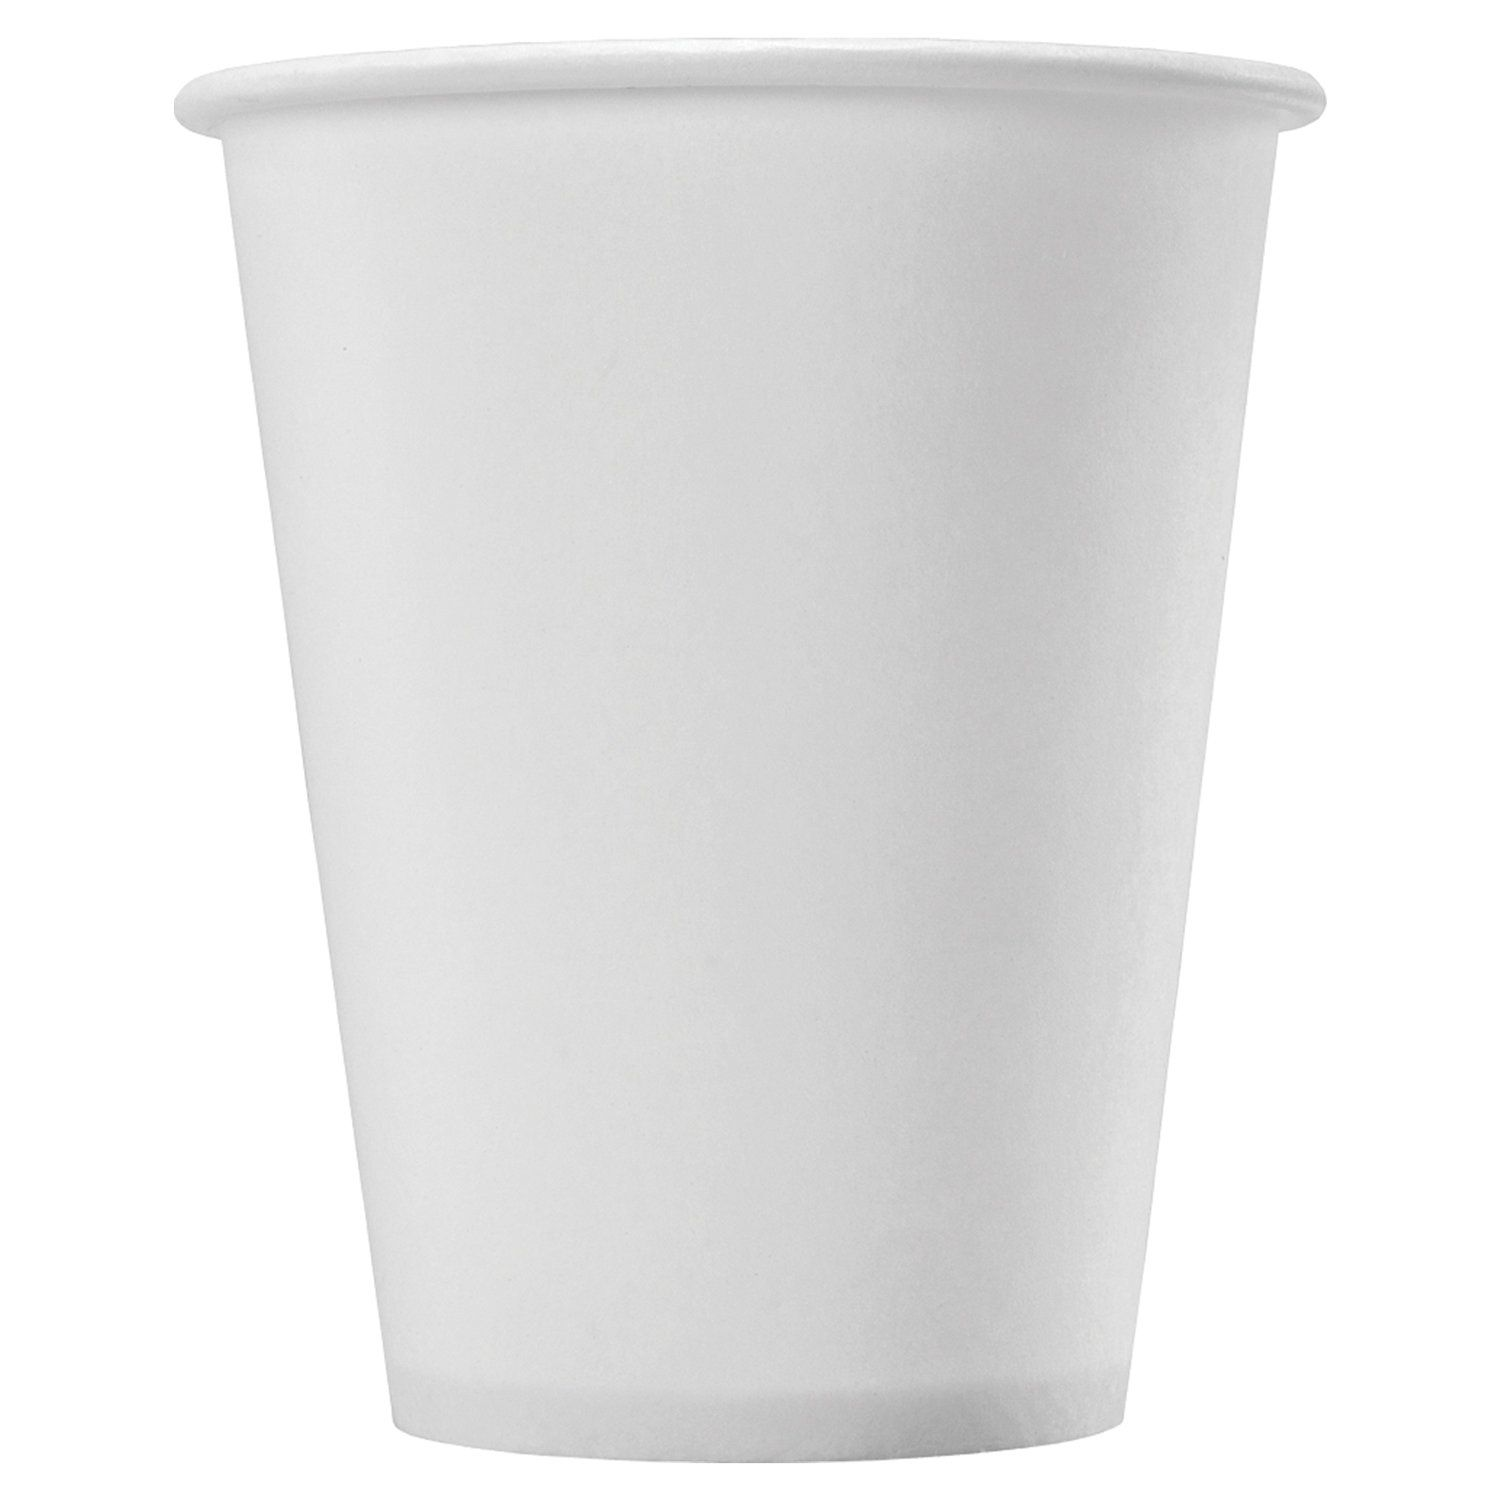 FORMATION / Disposable cups 180 ml, SET 80 pcs., Single-layer paper, white, cold / hot